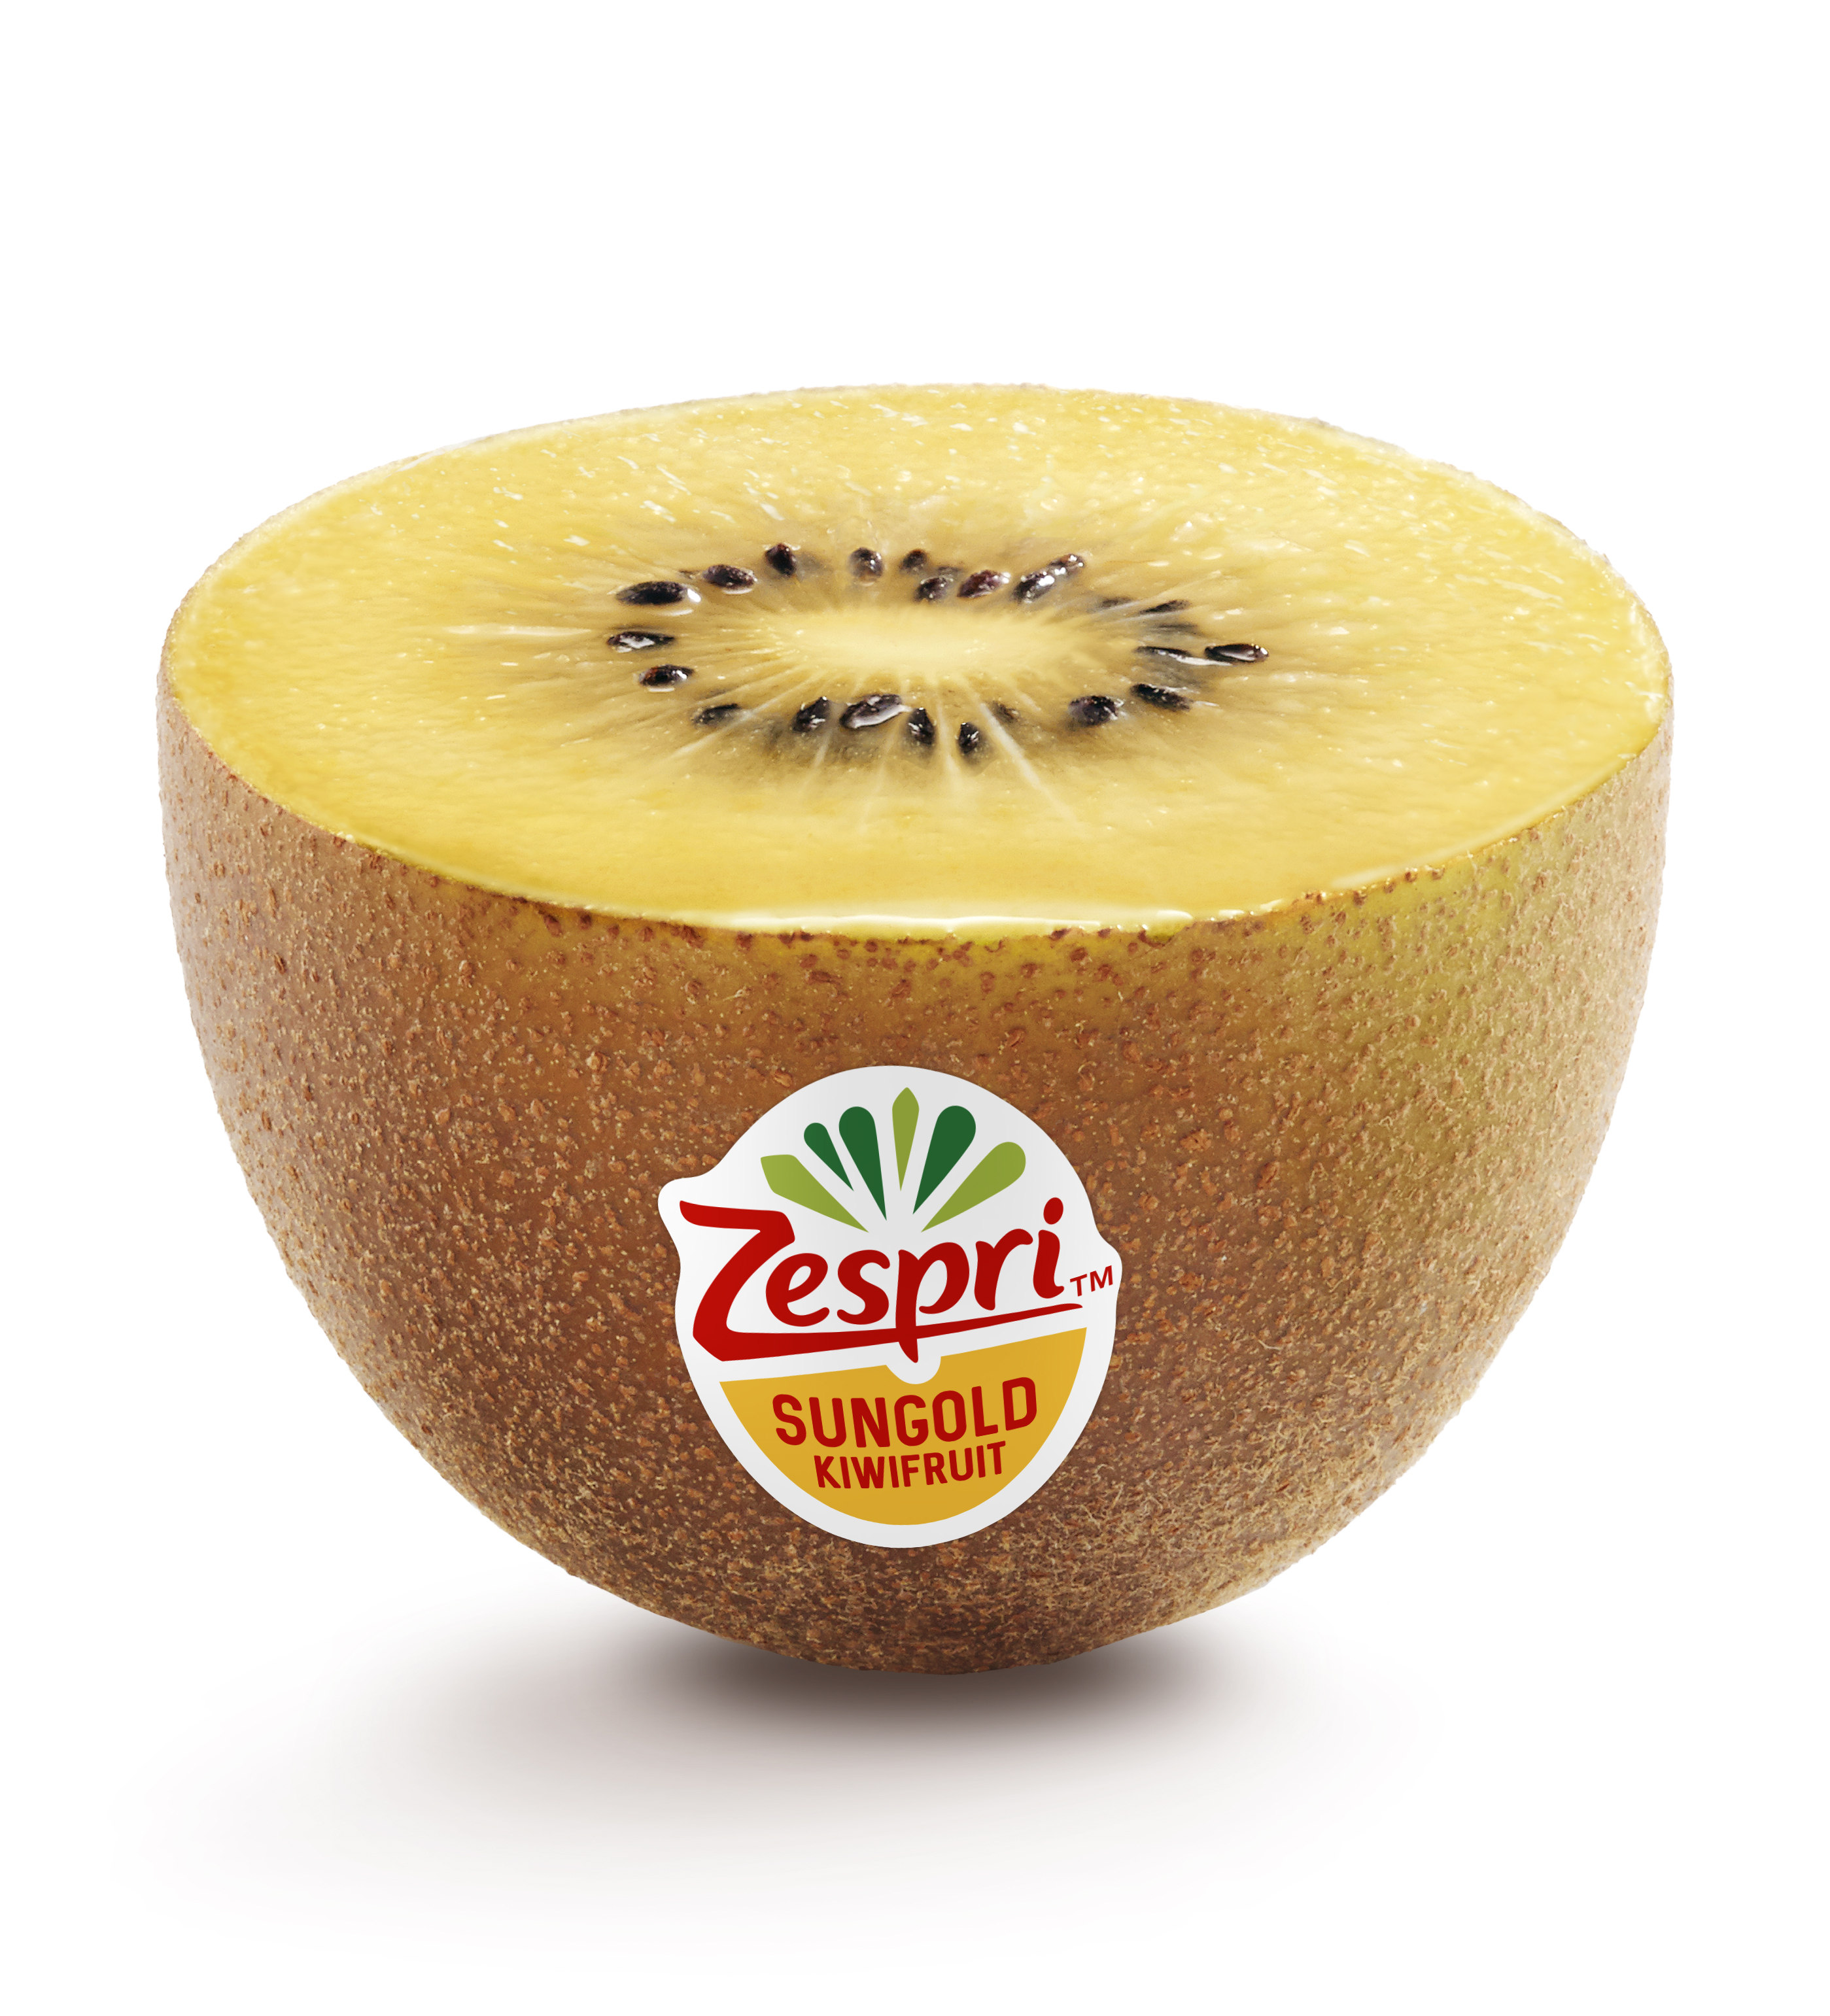 Zespri Sungold grown with Southern Cross Horticulture, Golden kiwifruit sliced in half